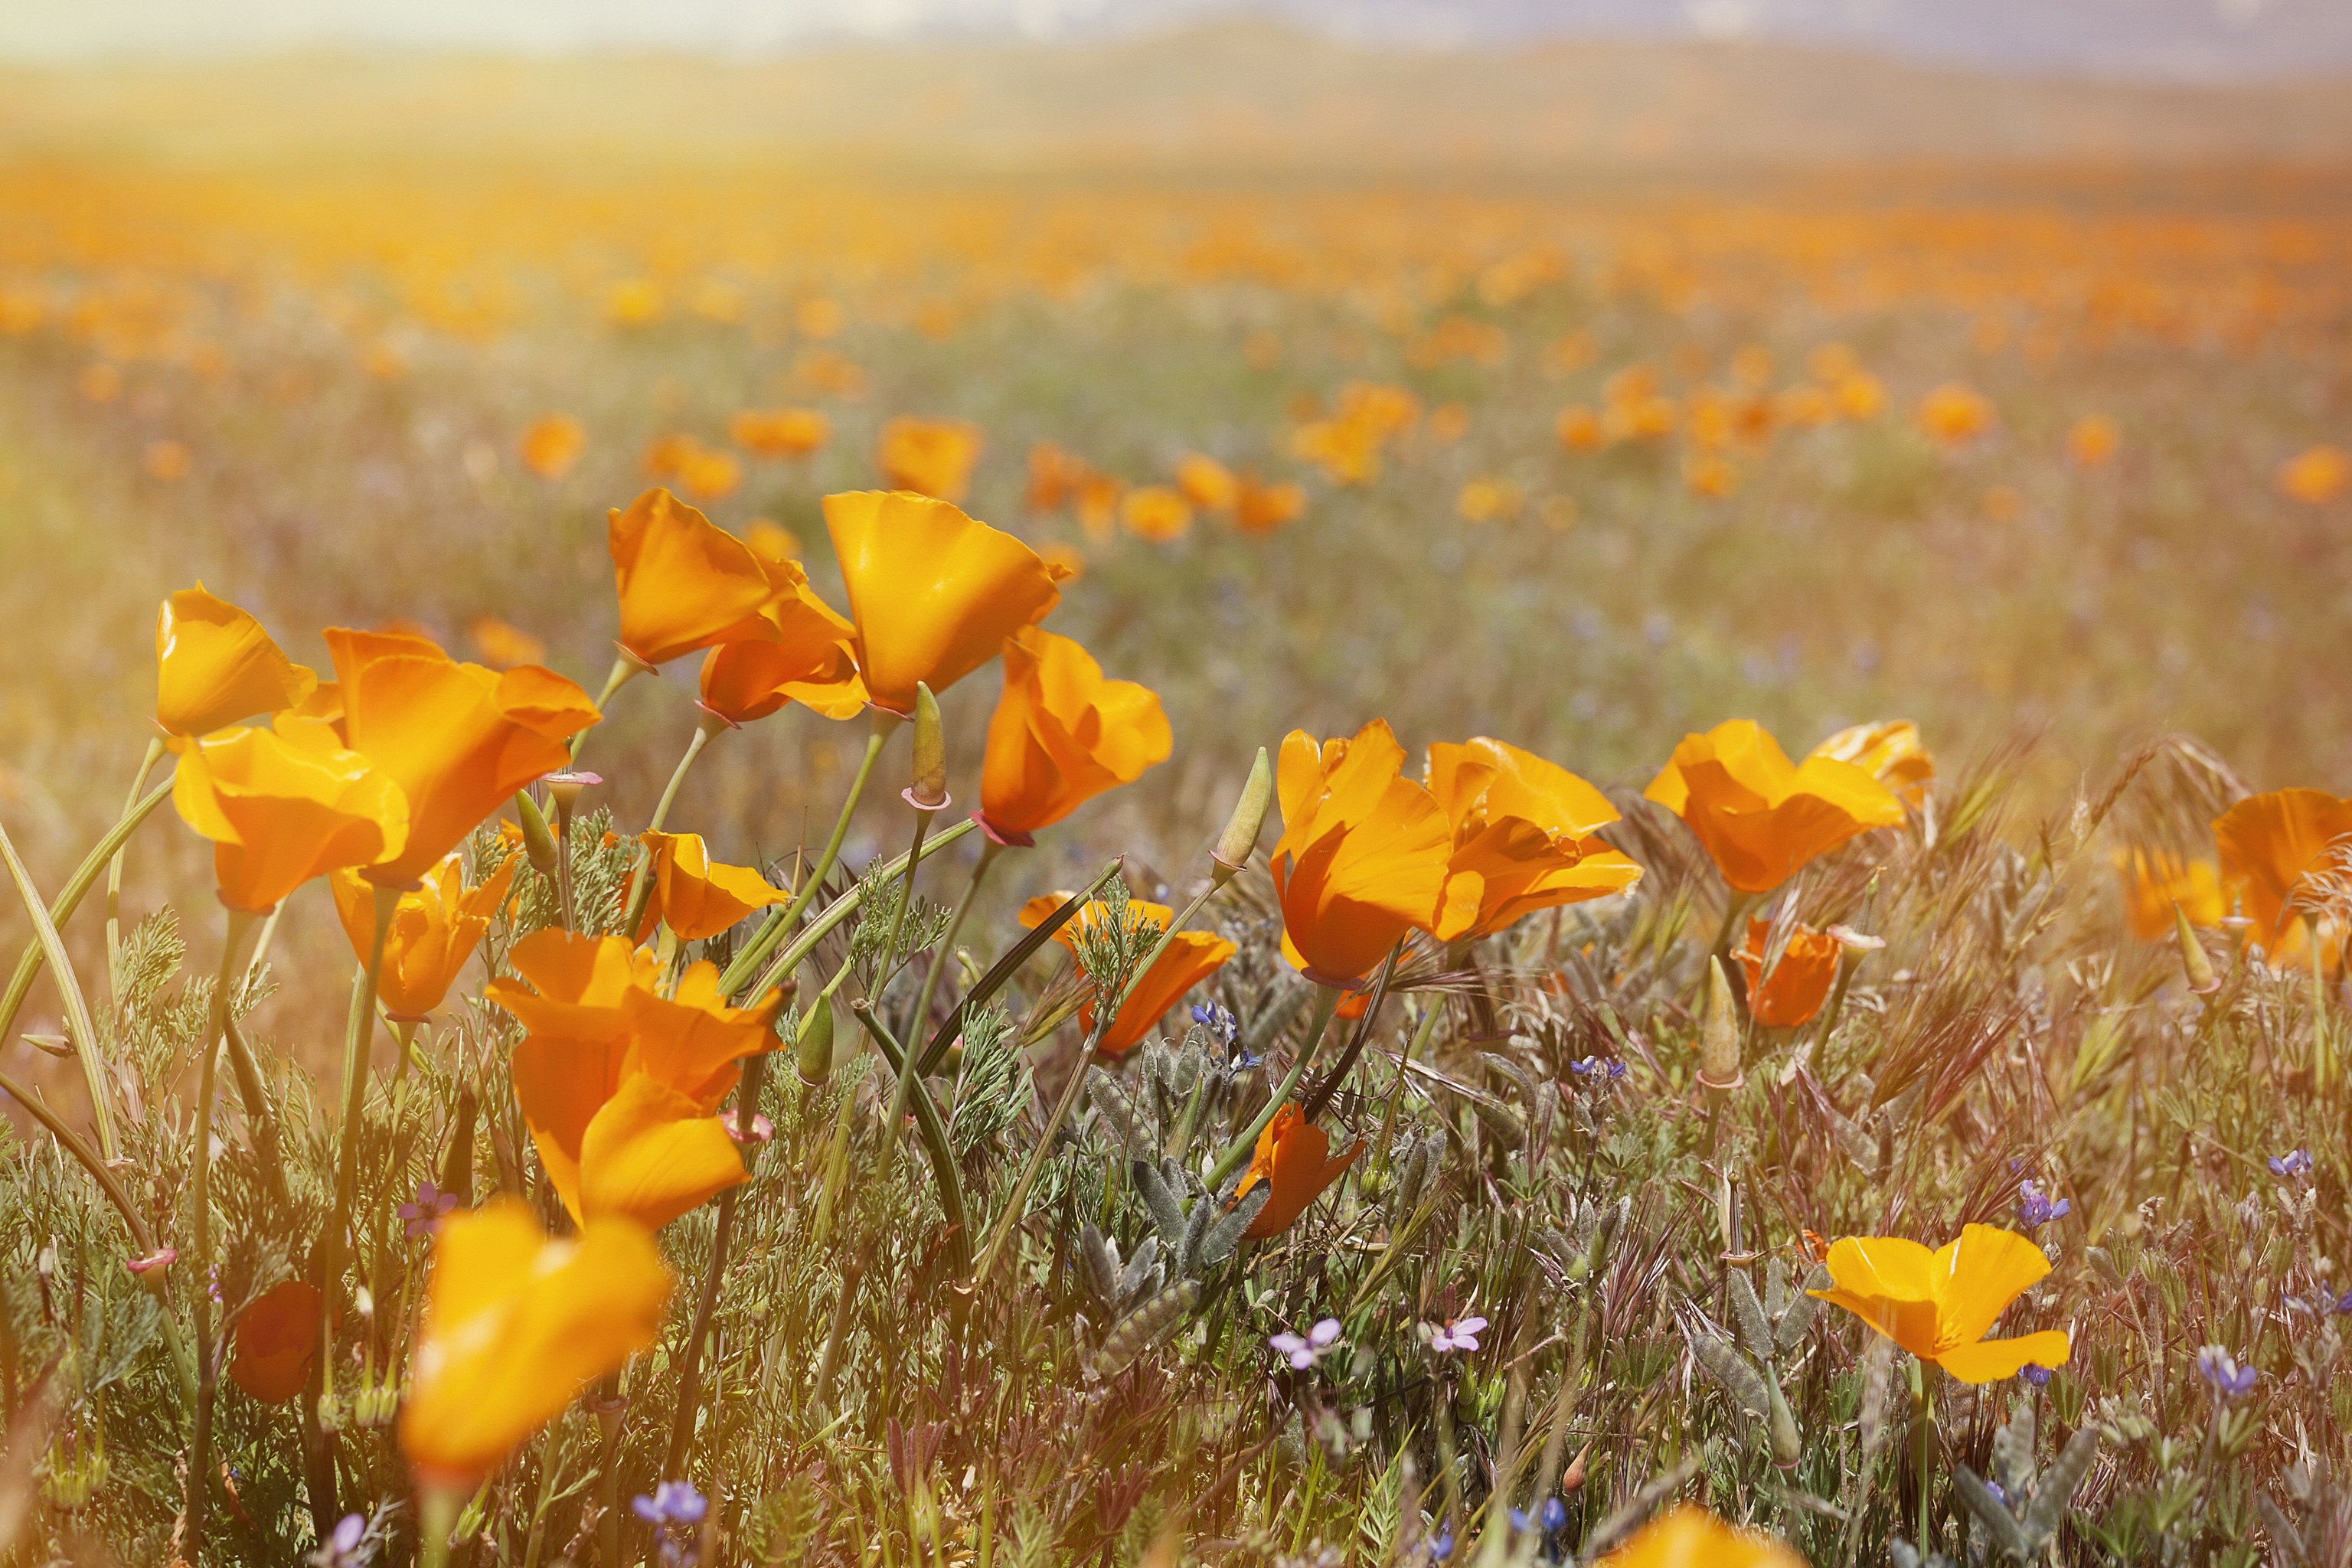 Trip Ideas flower grass Nature poppy plant eschscholzia californica flora natural environment ecosystem yellow grassland poppy family prairie meadow field land plant wildflower flowering plant petal leaf tundra coquelicot plain autumn grass family sunlight steppe colored